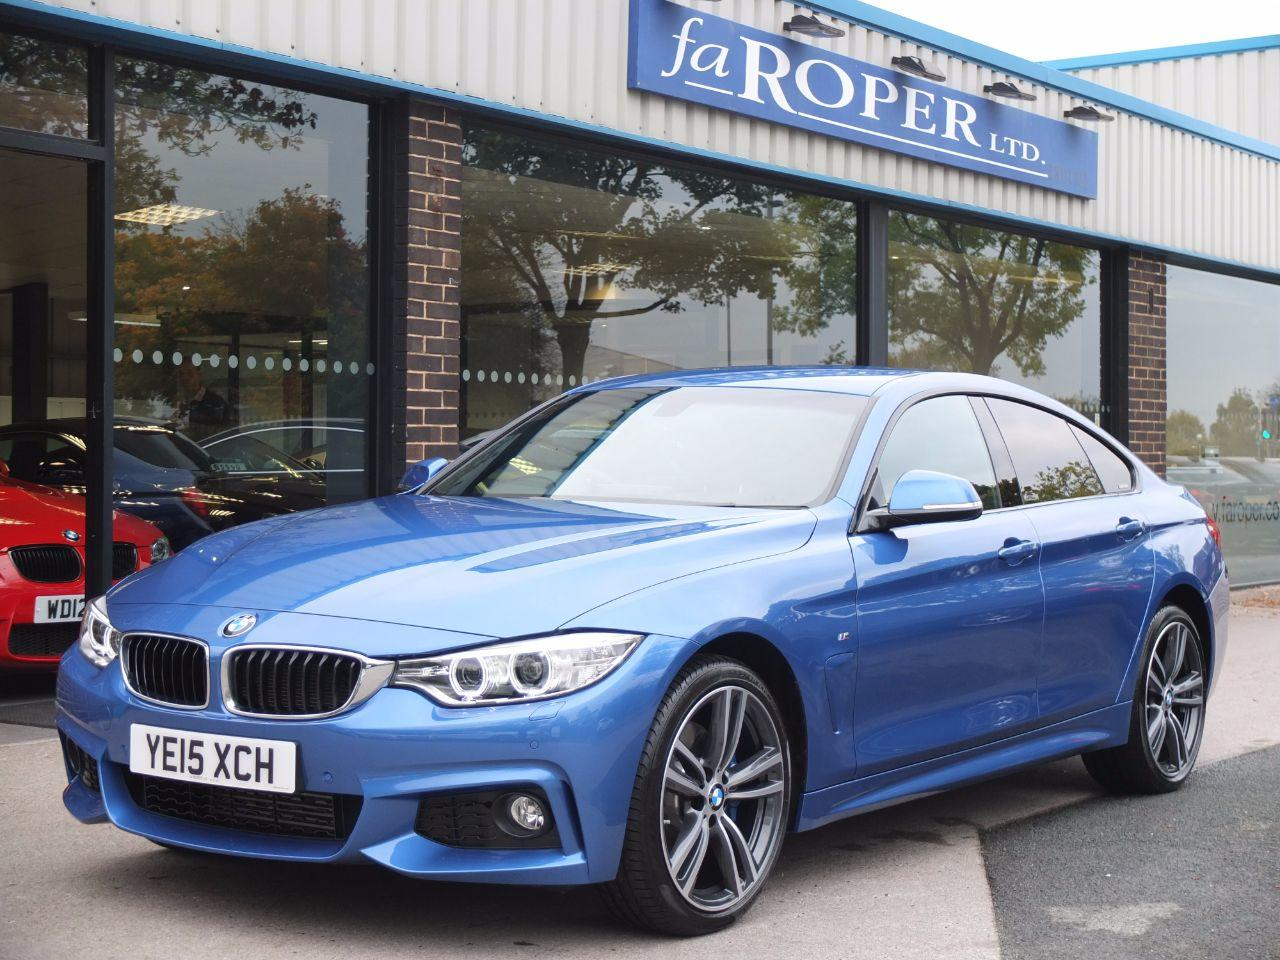 BMW 4 Series 2.0 420d xDrive M Sport Gran Coupe Auto (M Sport Plus Pack) Coupe Diesel Estoril Blue Metallic